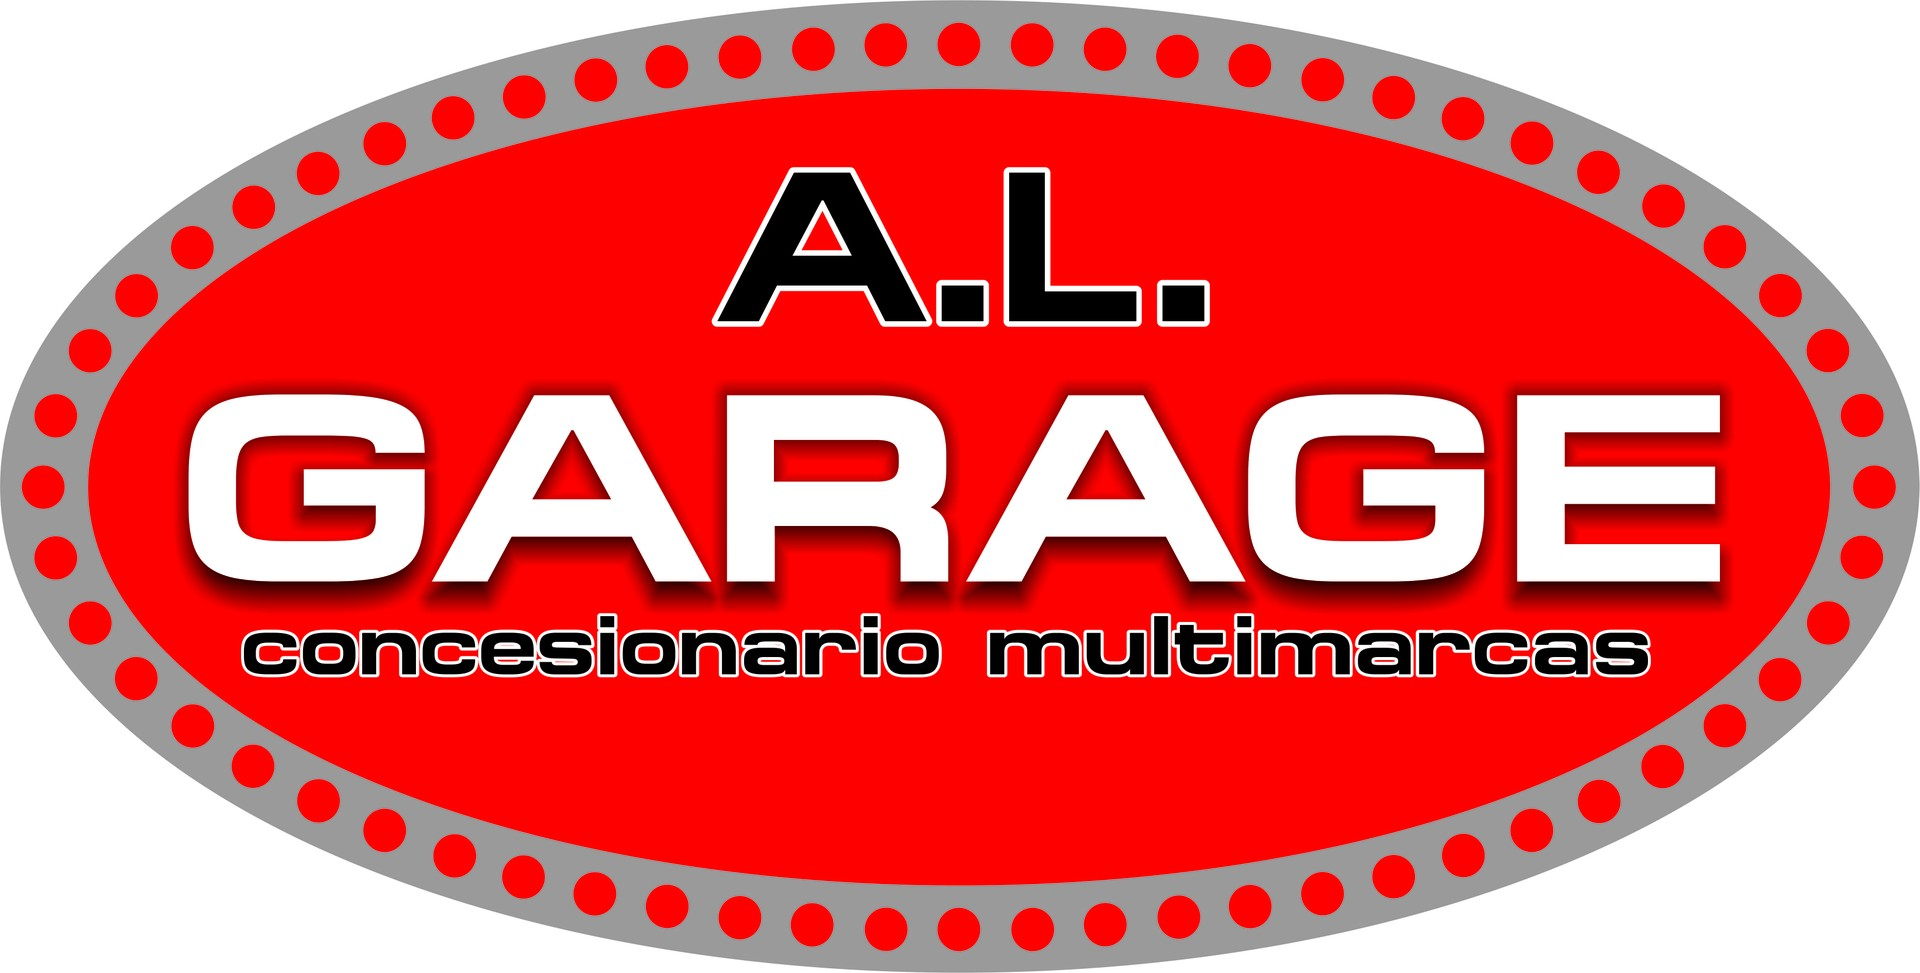 A. L. Garage Center Concesionario Multimarcas